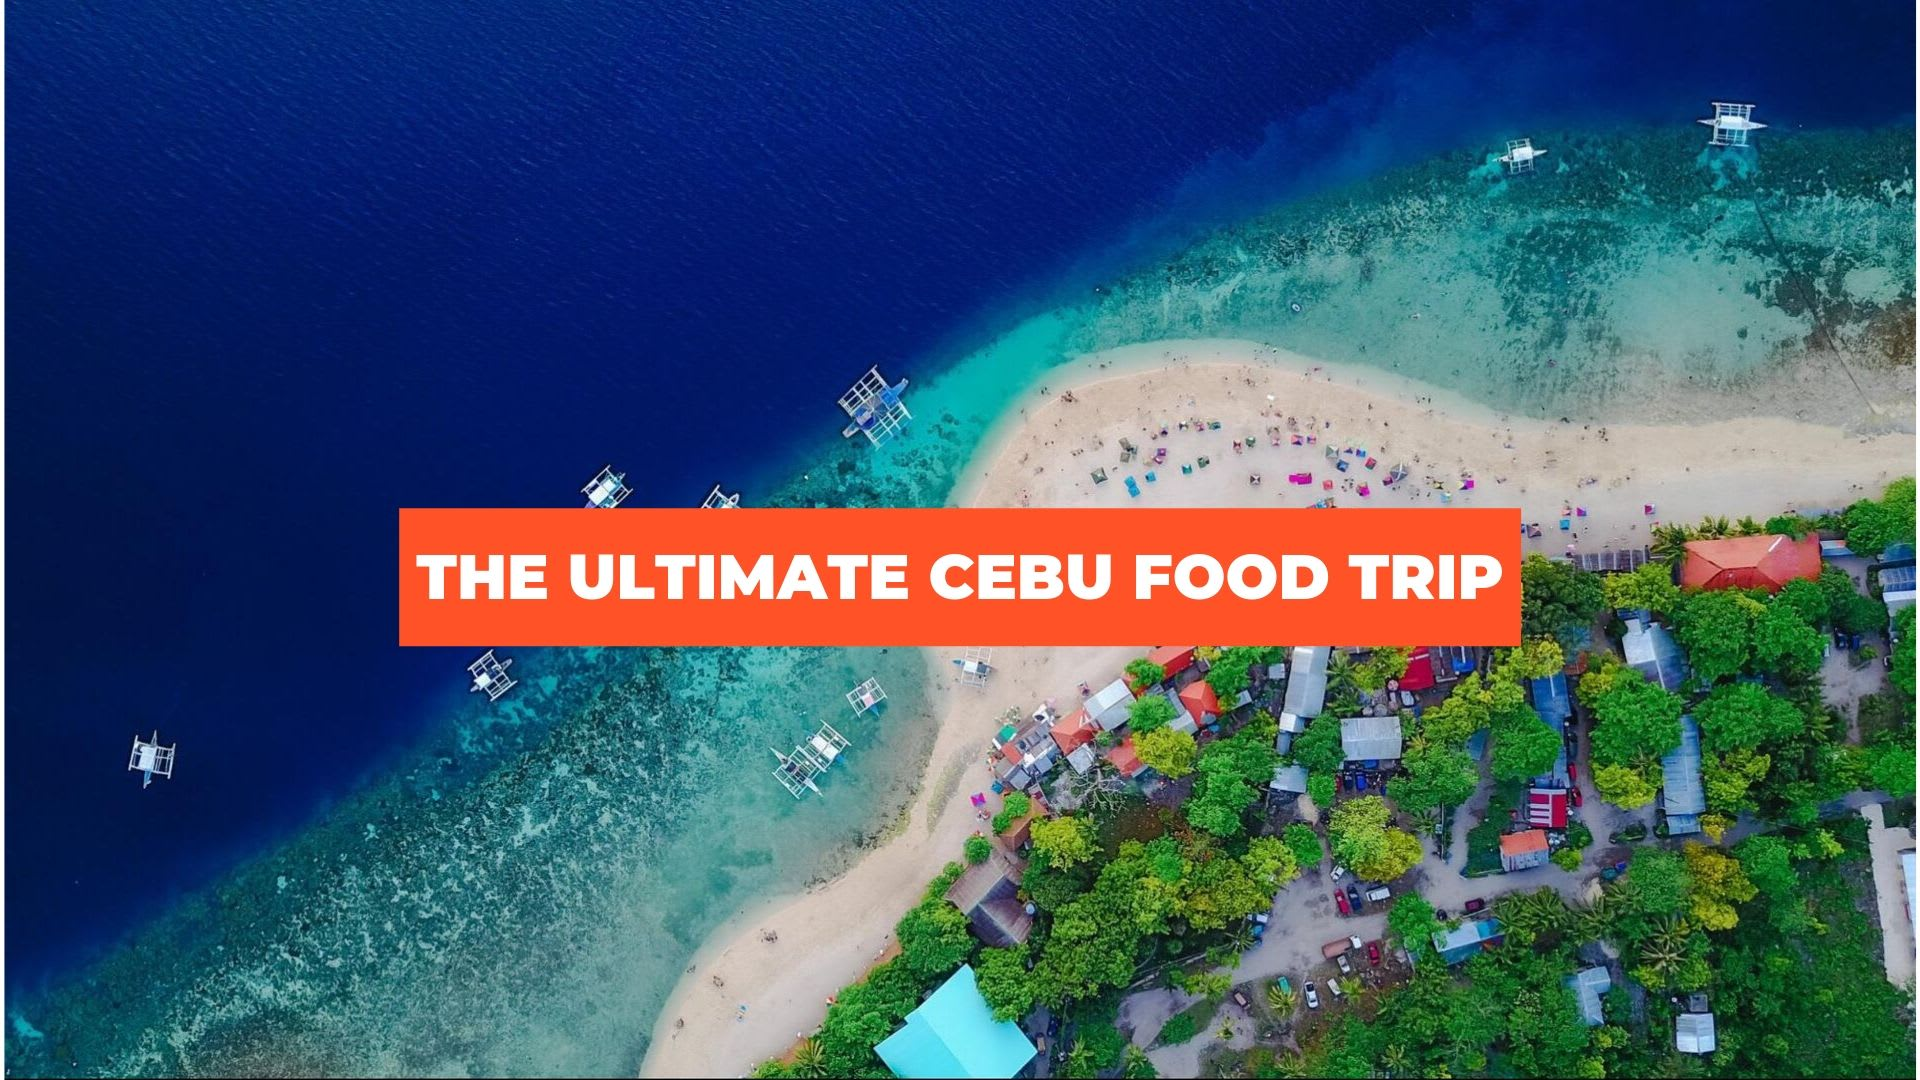 cebu food guide cover